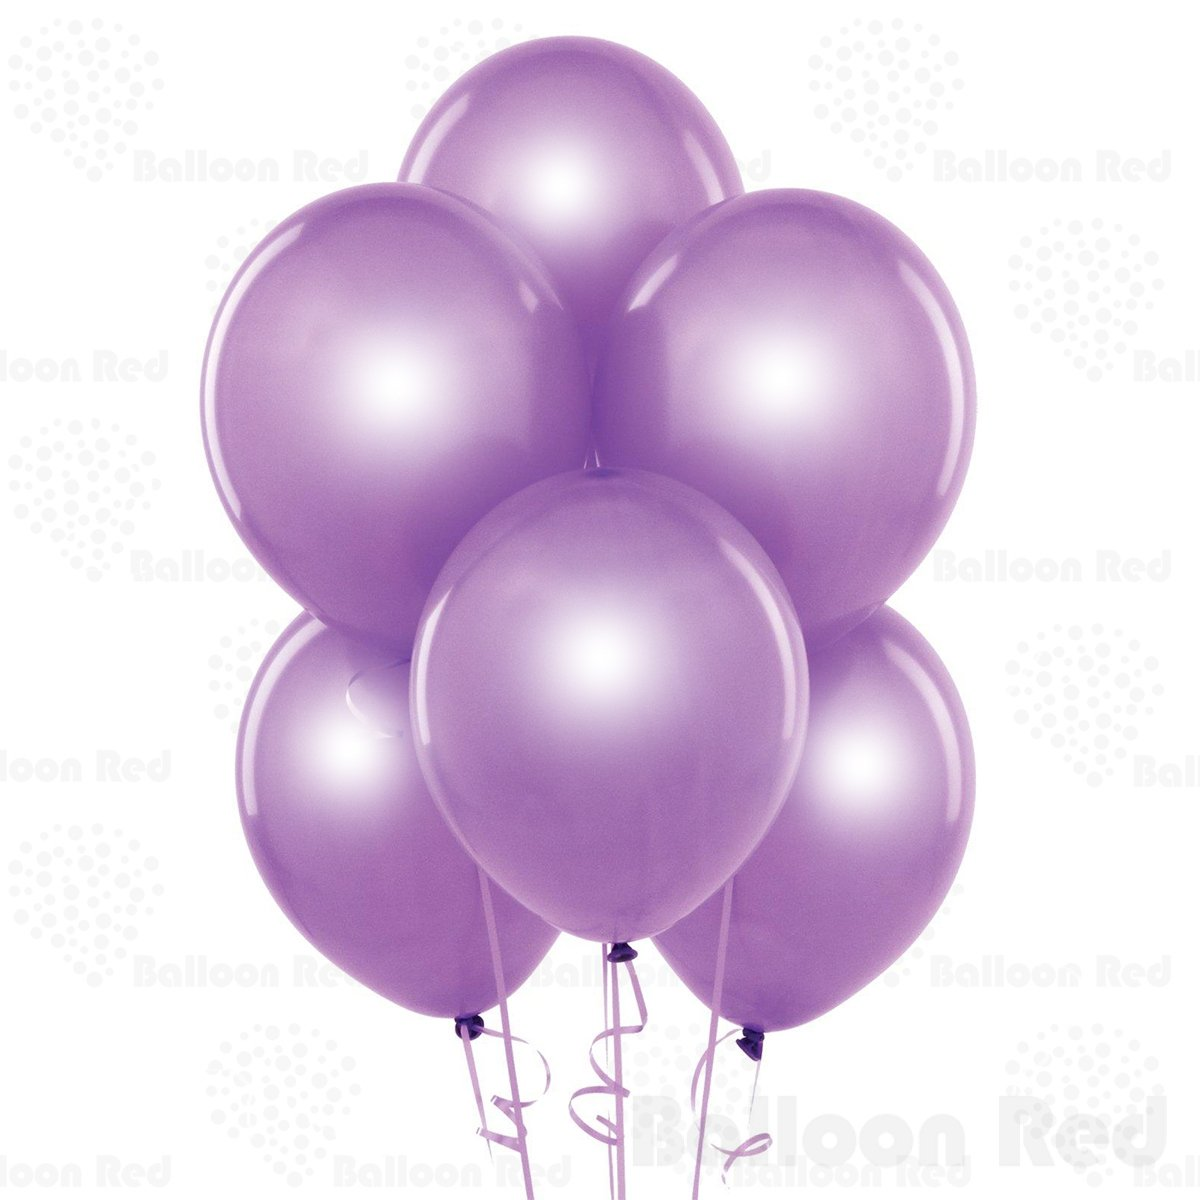 Premium Helium Quality Pack of 72 12 Inch Pearlized Latex Balloons Pearl Rose Pink for Bridal Shower Wedding Birthday Party Decorations Supplies Balloon Red 12lat-72-rsgd